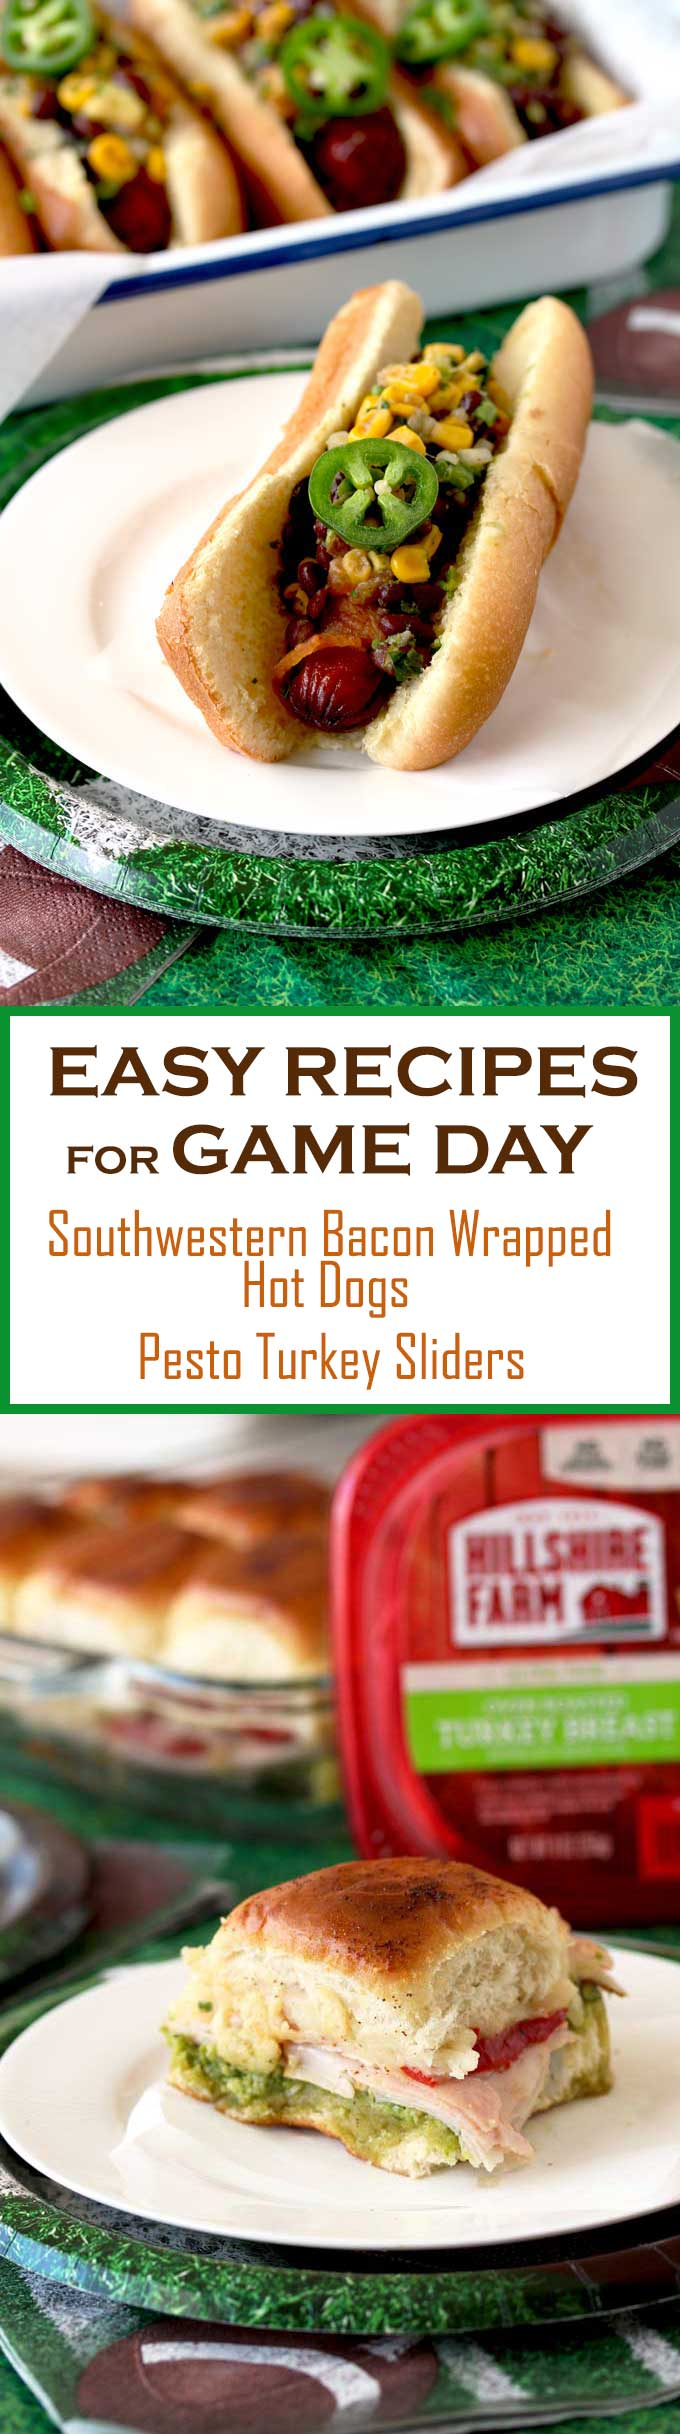 Game Day Foods are as important as the big game! Whether you are hosting a big party or just enjoying the game at home, these two easy and delicious recipes plus my tips for stress-free entertaining will turn any game day into a victory! #ad #Tysonwinninglineup #gameday #recipes #superbowl